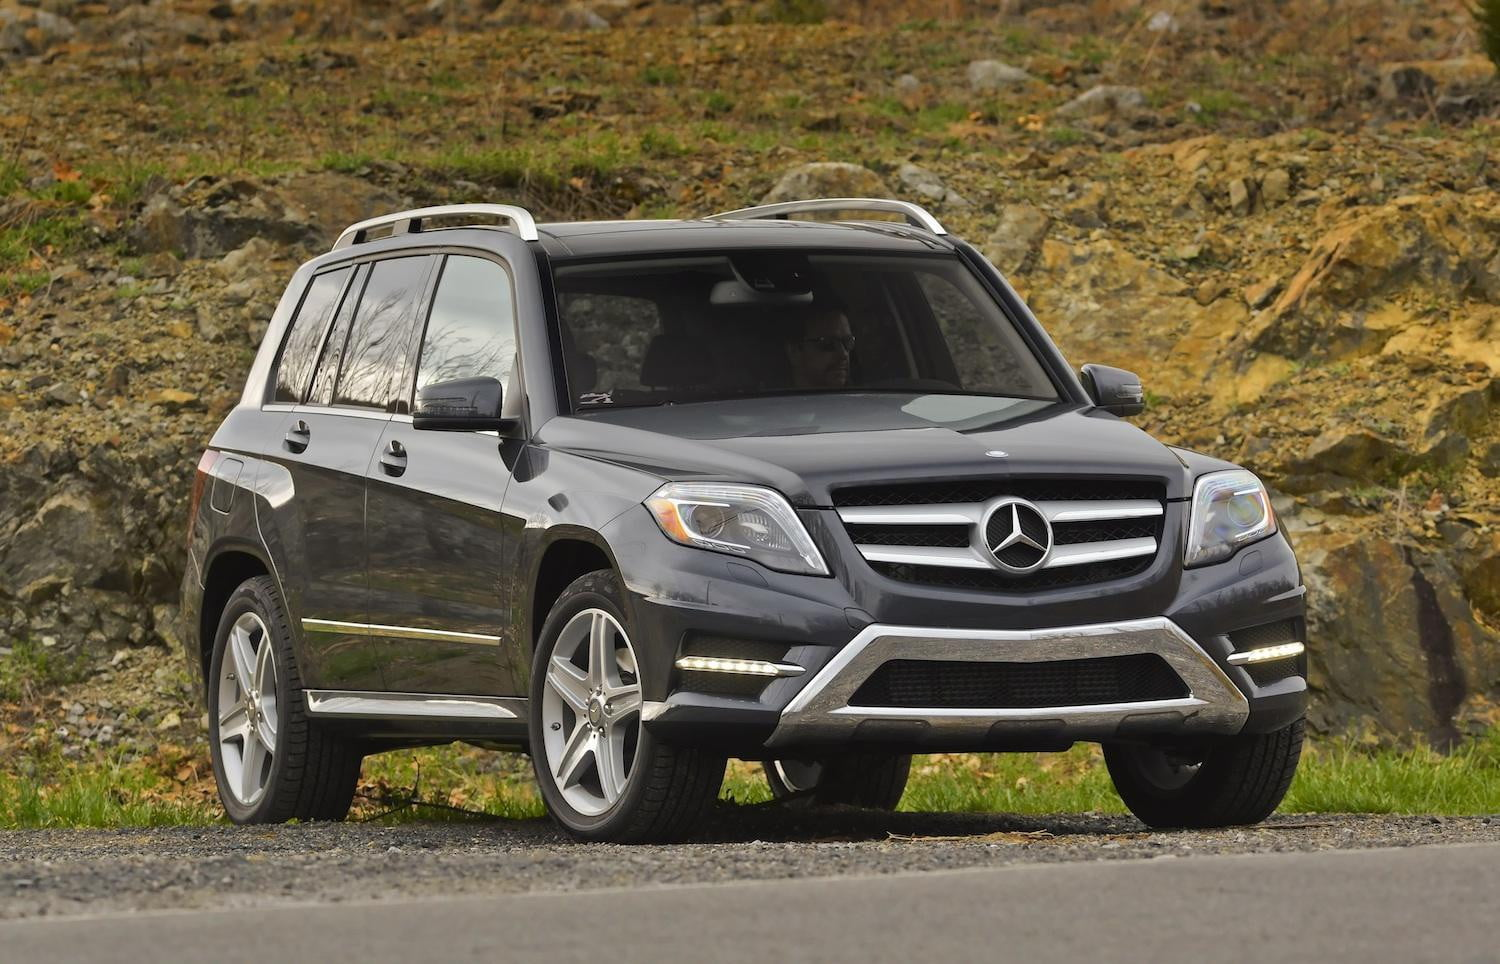 mercedes benz prices the diesel powered glk250 bluetec 4matic at 38 590 digital trends. Black Bedroom Furniture Sets. Home Design Ideas